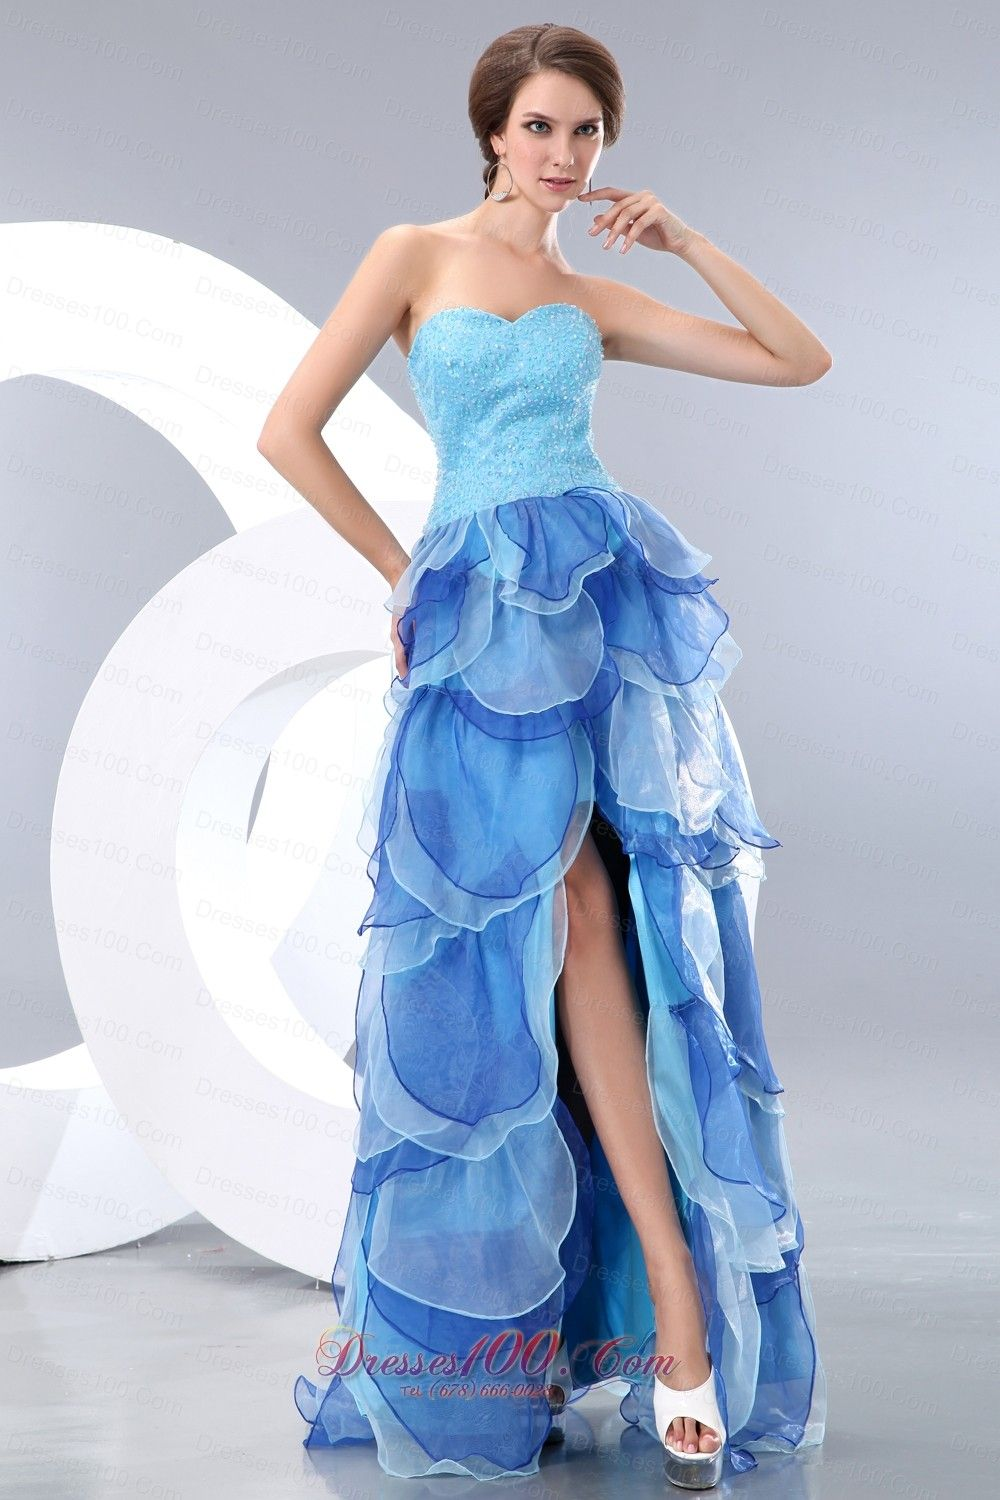 up-to-date Pageant Dresses in Michigan up-to-date Pageant Dresses in ...